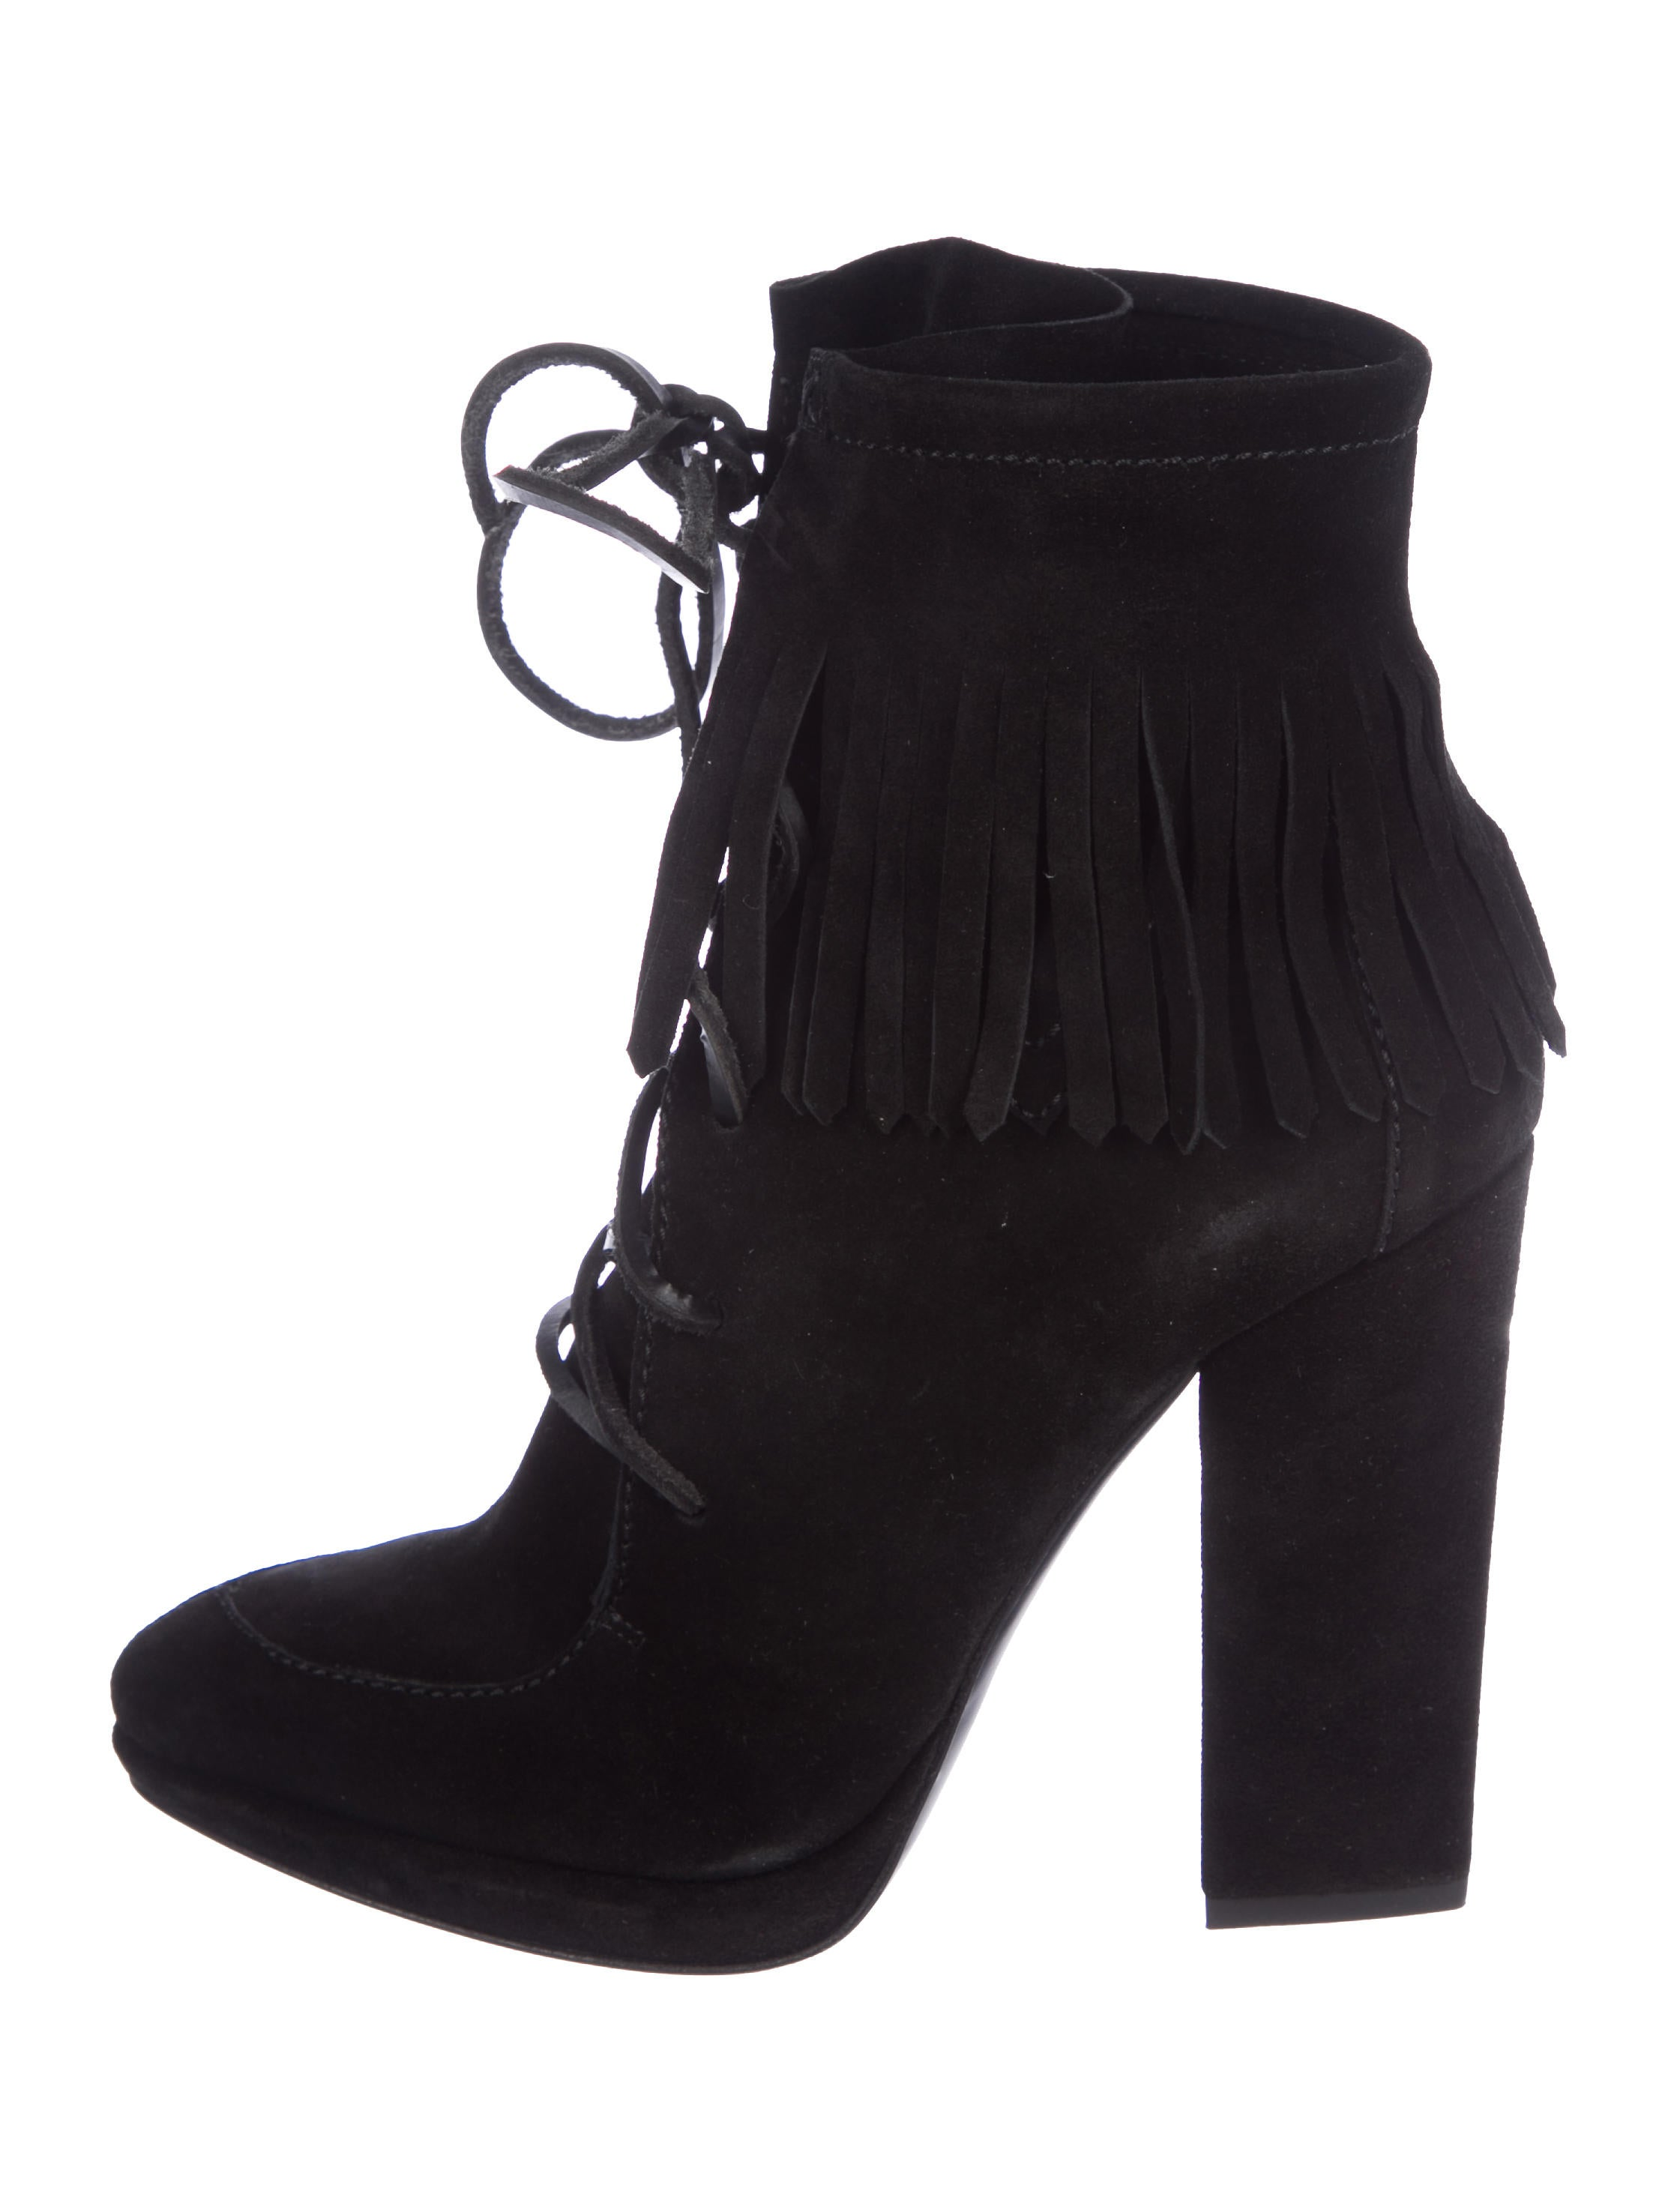 Giuseppe Zanotti Uma 110 Fringe Ankle Boots amazon sale online cheap sale best sale online cheap outlet authentic 2014 newest online yjeYvAyo